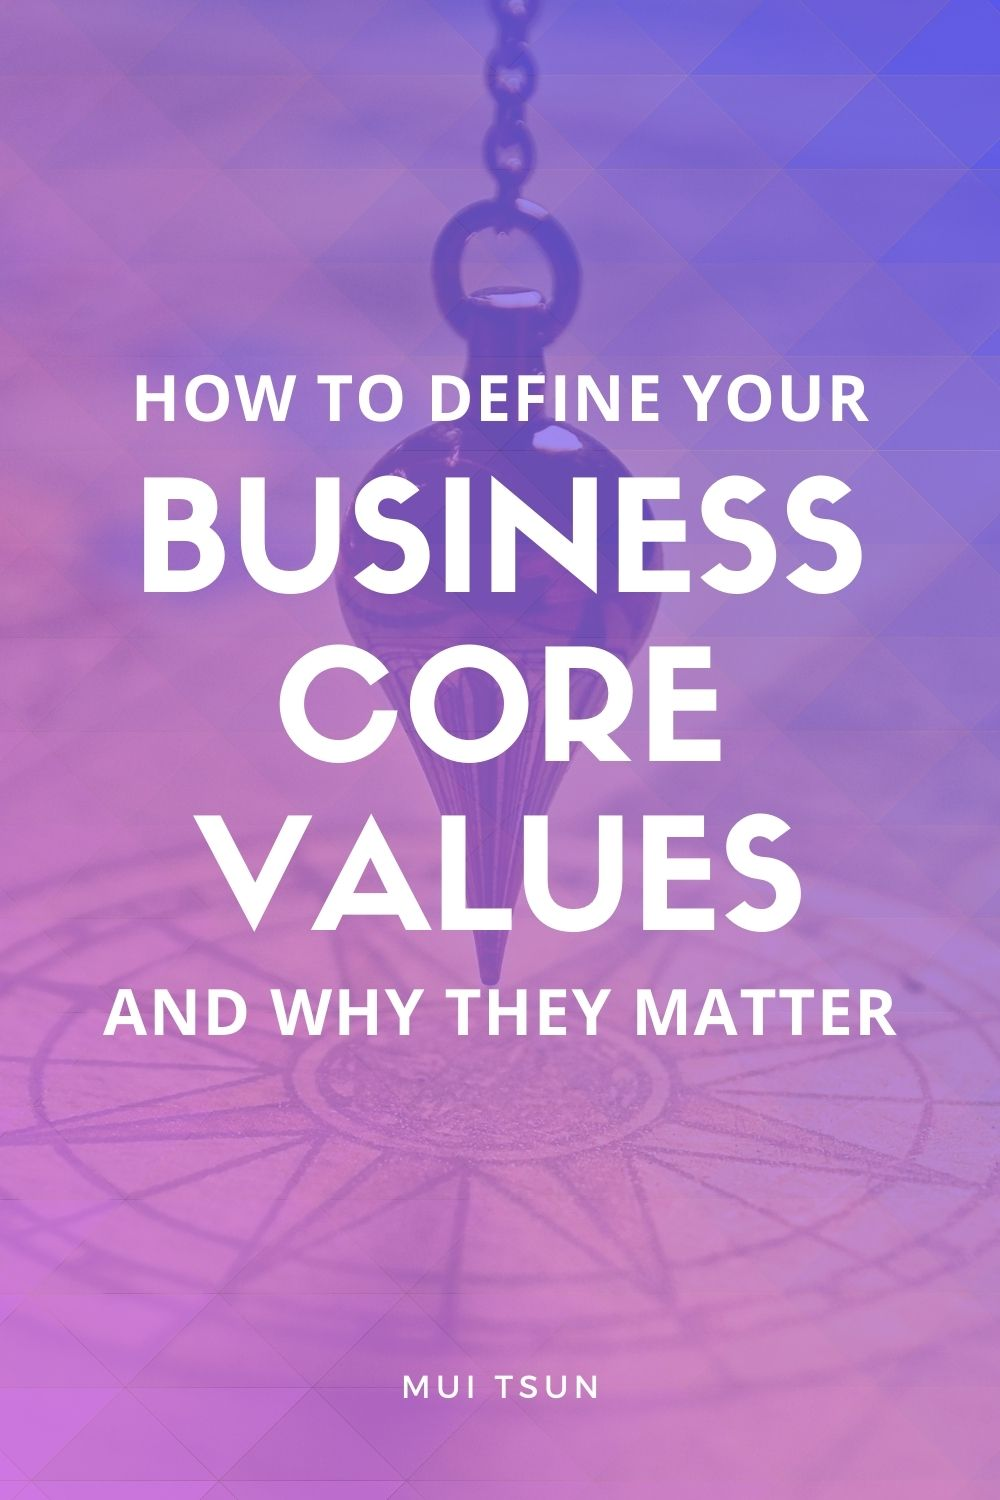 How To Define Your Business Core Values and Why They Matter